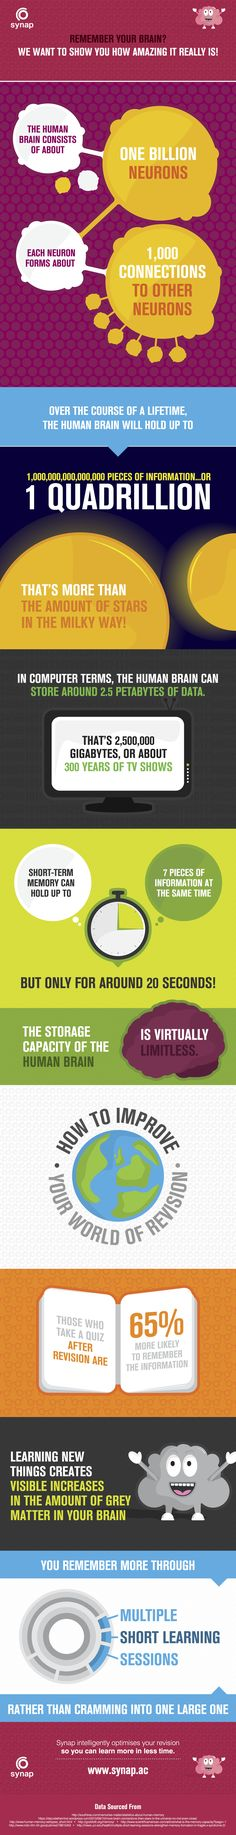 Your Amazing Memory Infographic - http://elearninginfographics.com/amazing-memory-infographic/